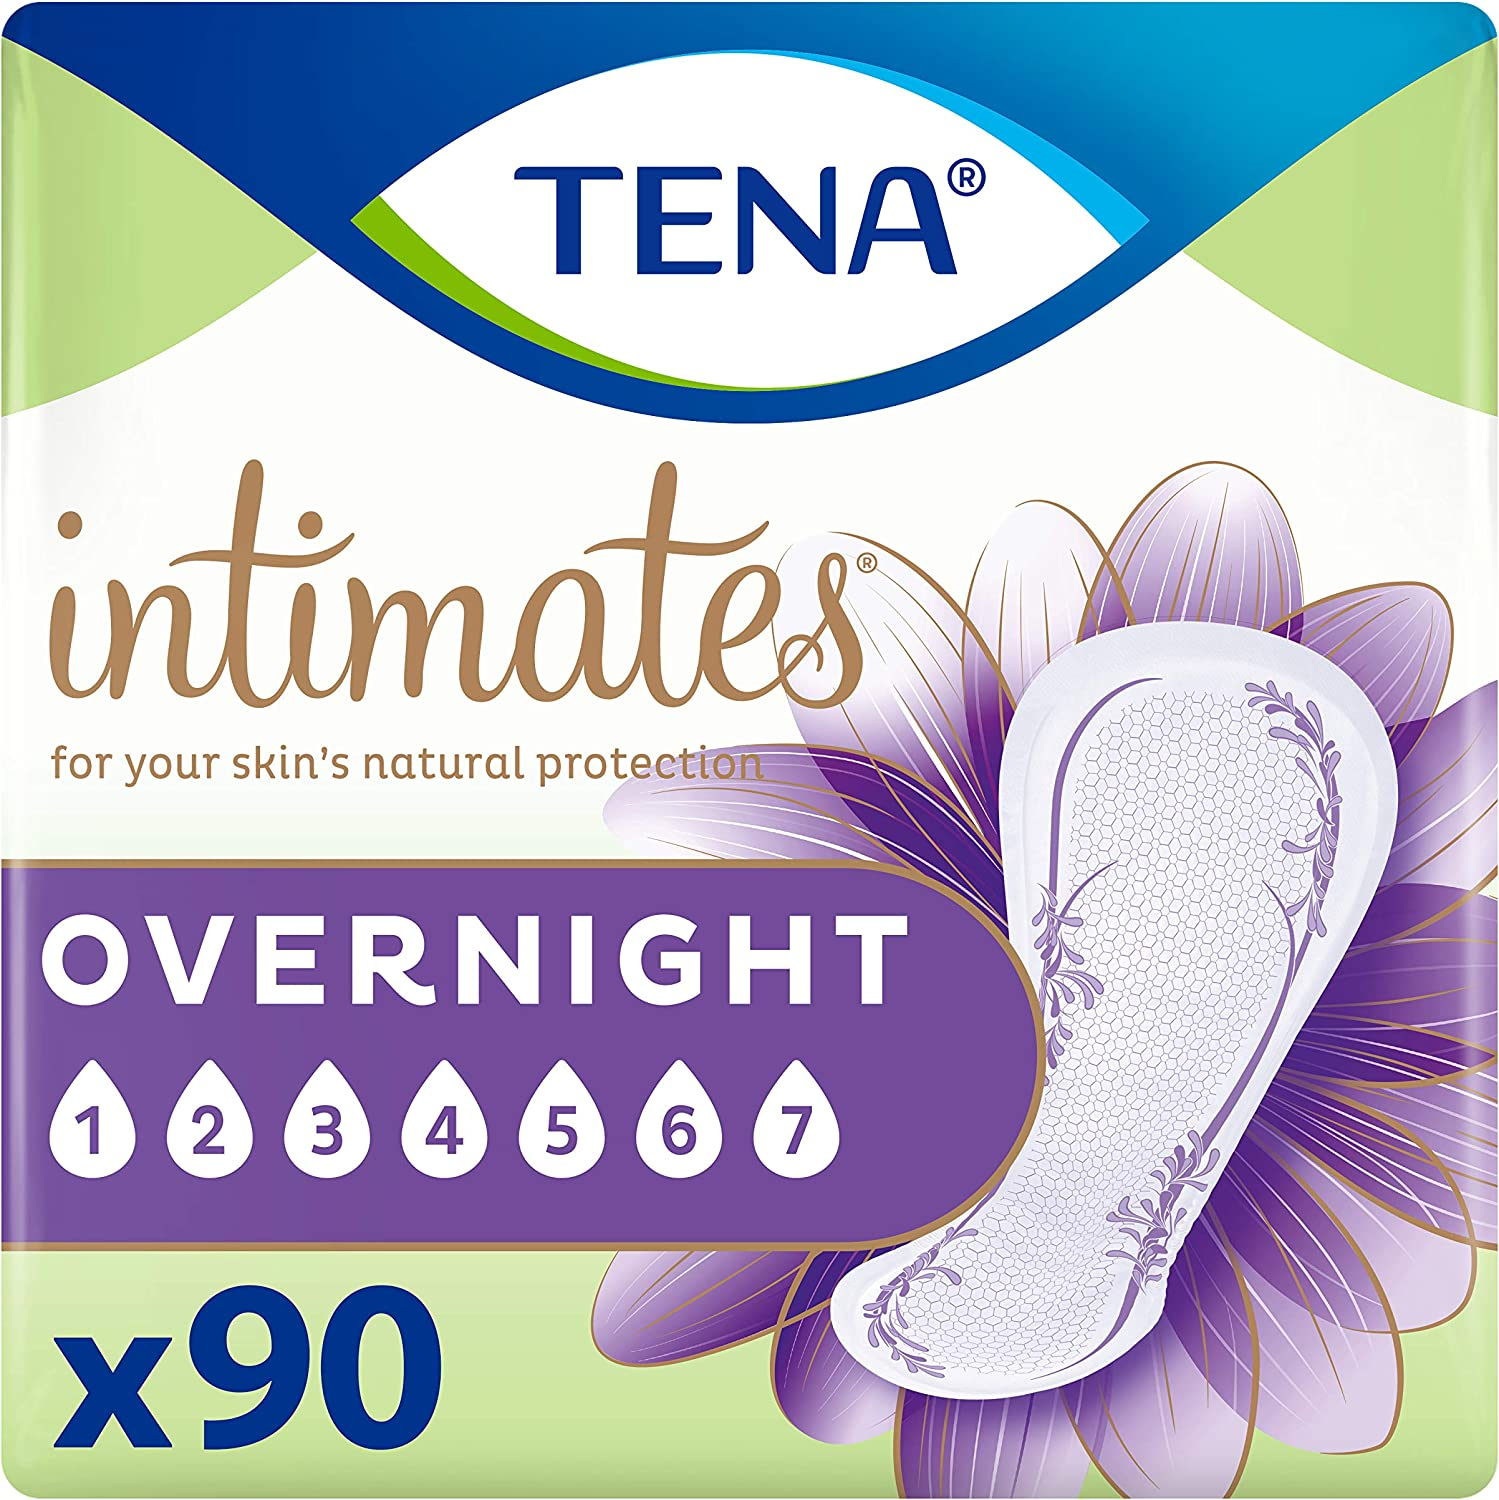 TENA Intimates Overnight Absorbency Incontinence/Bladder Control Pad with Lie Down Protection, 90 Count (Packaging May Vary): Health & Personal Care